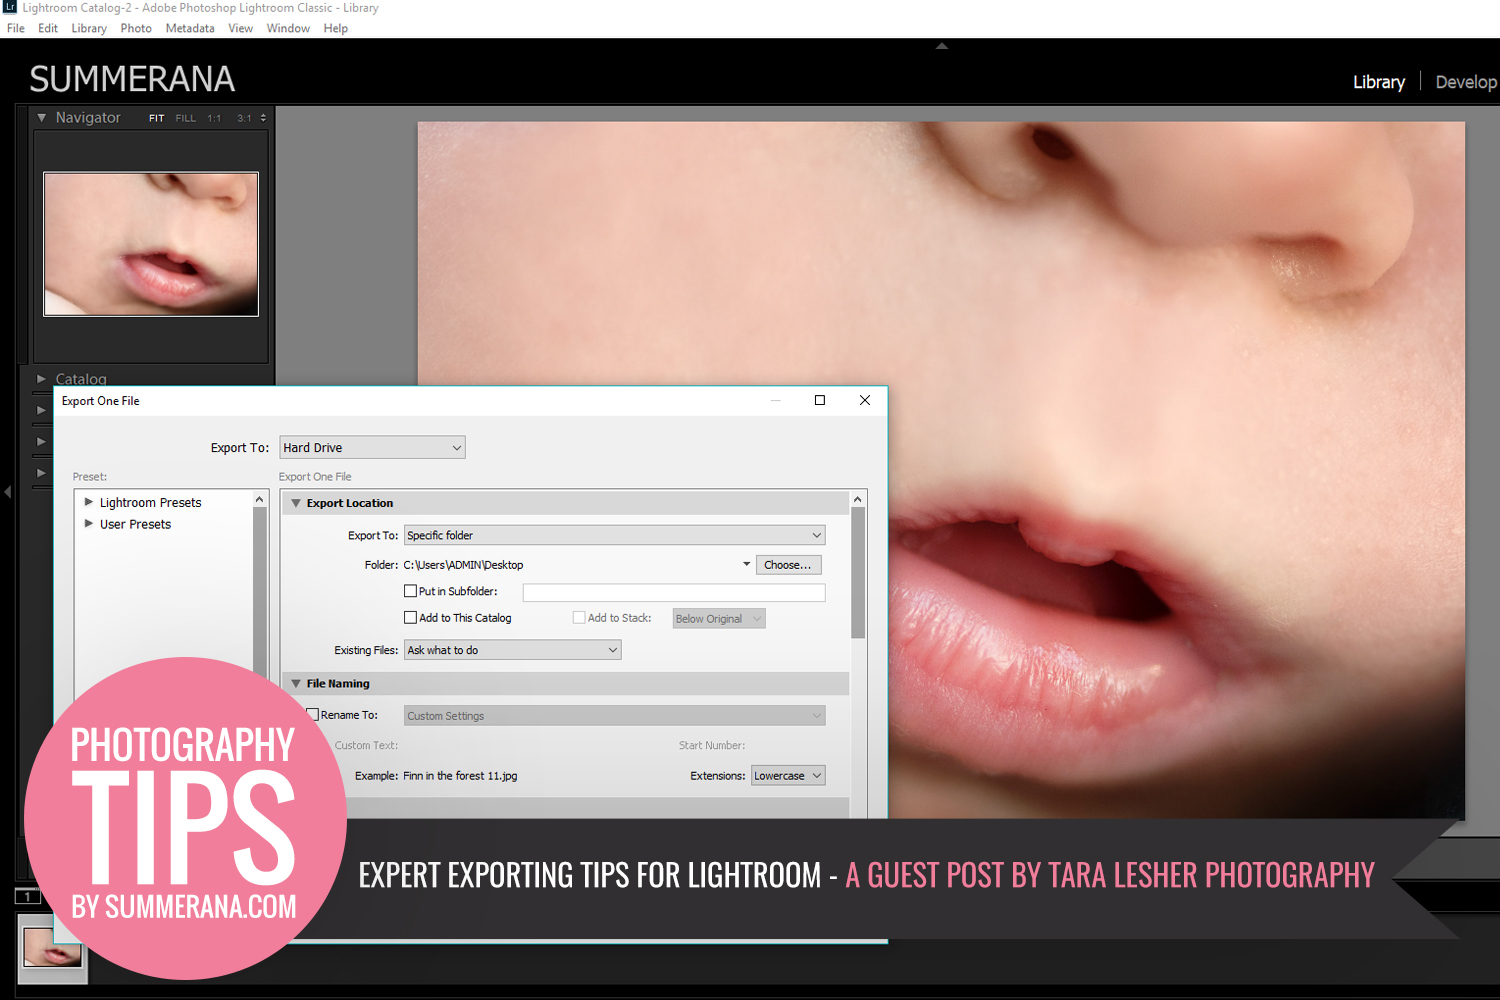 Expert-Exporting-Tips for-Lightroom